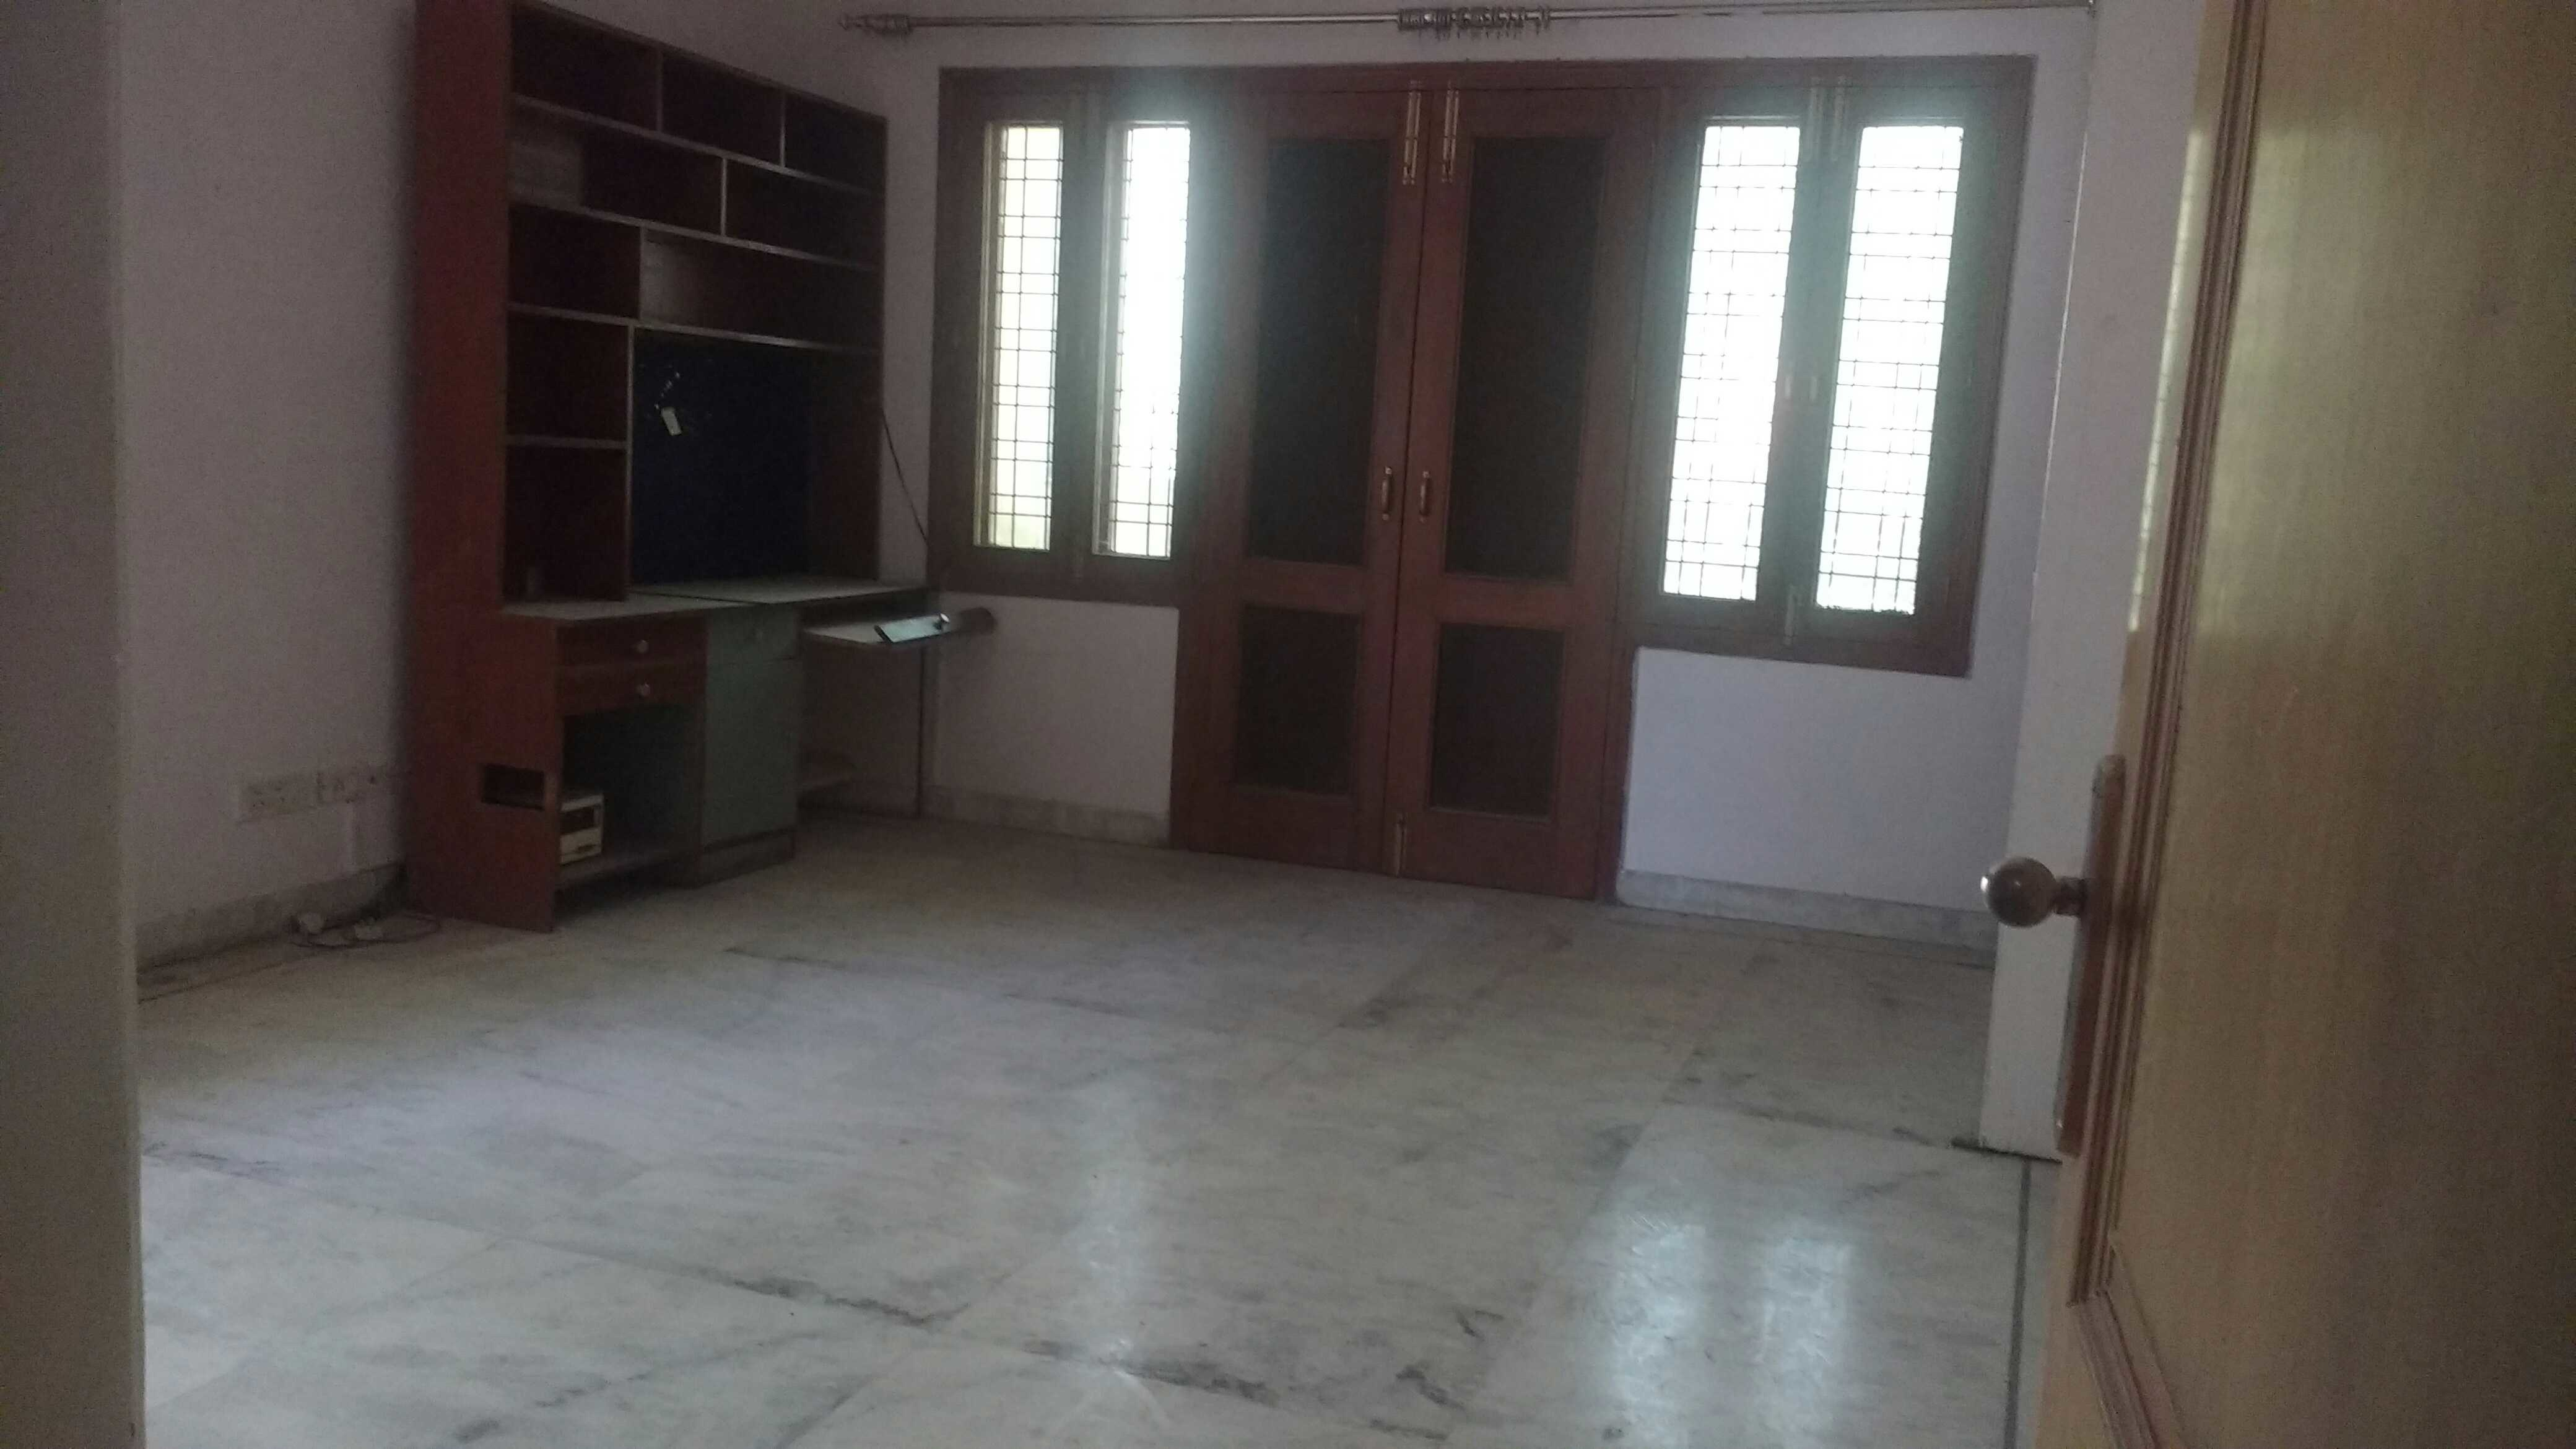 2500 sq ft 4BHK 4BHK+4T (2,500 sq ft) Property By Daksh Property In Project, Freedom Fighter Enclave